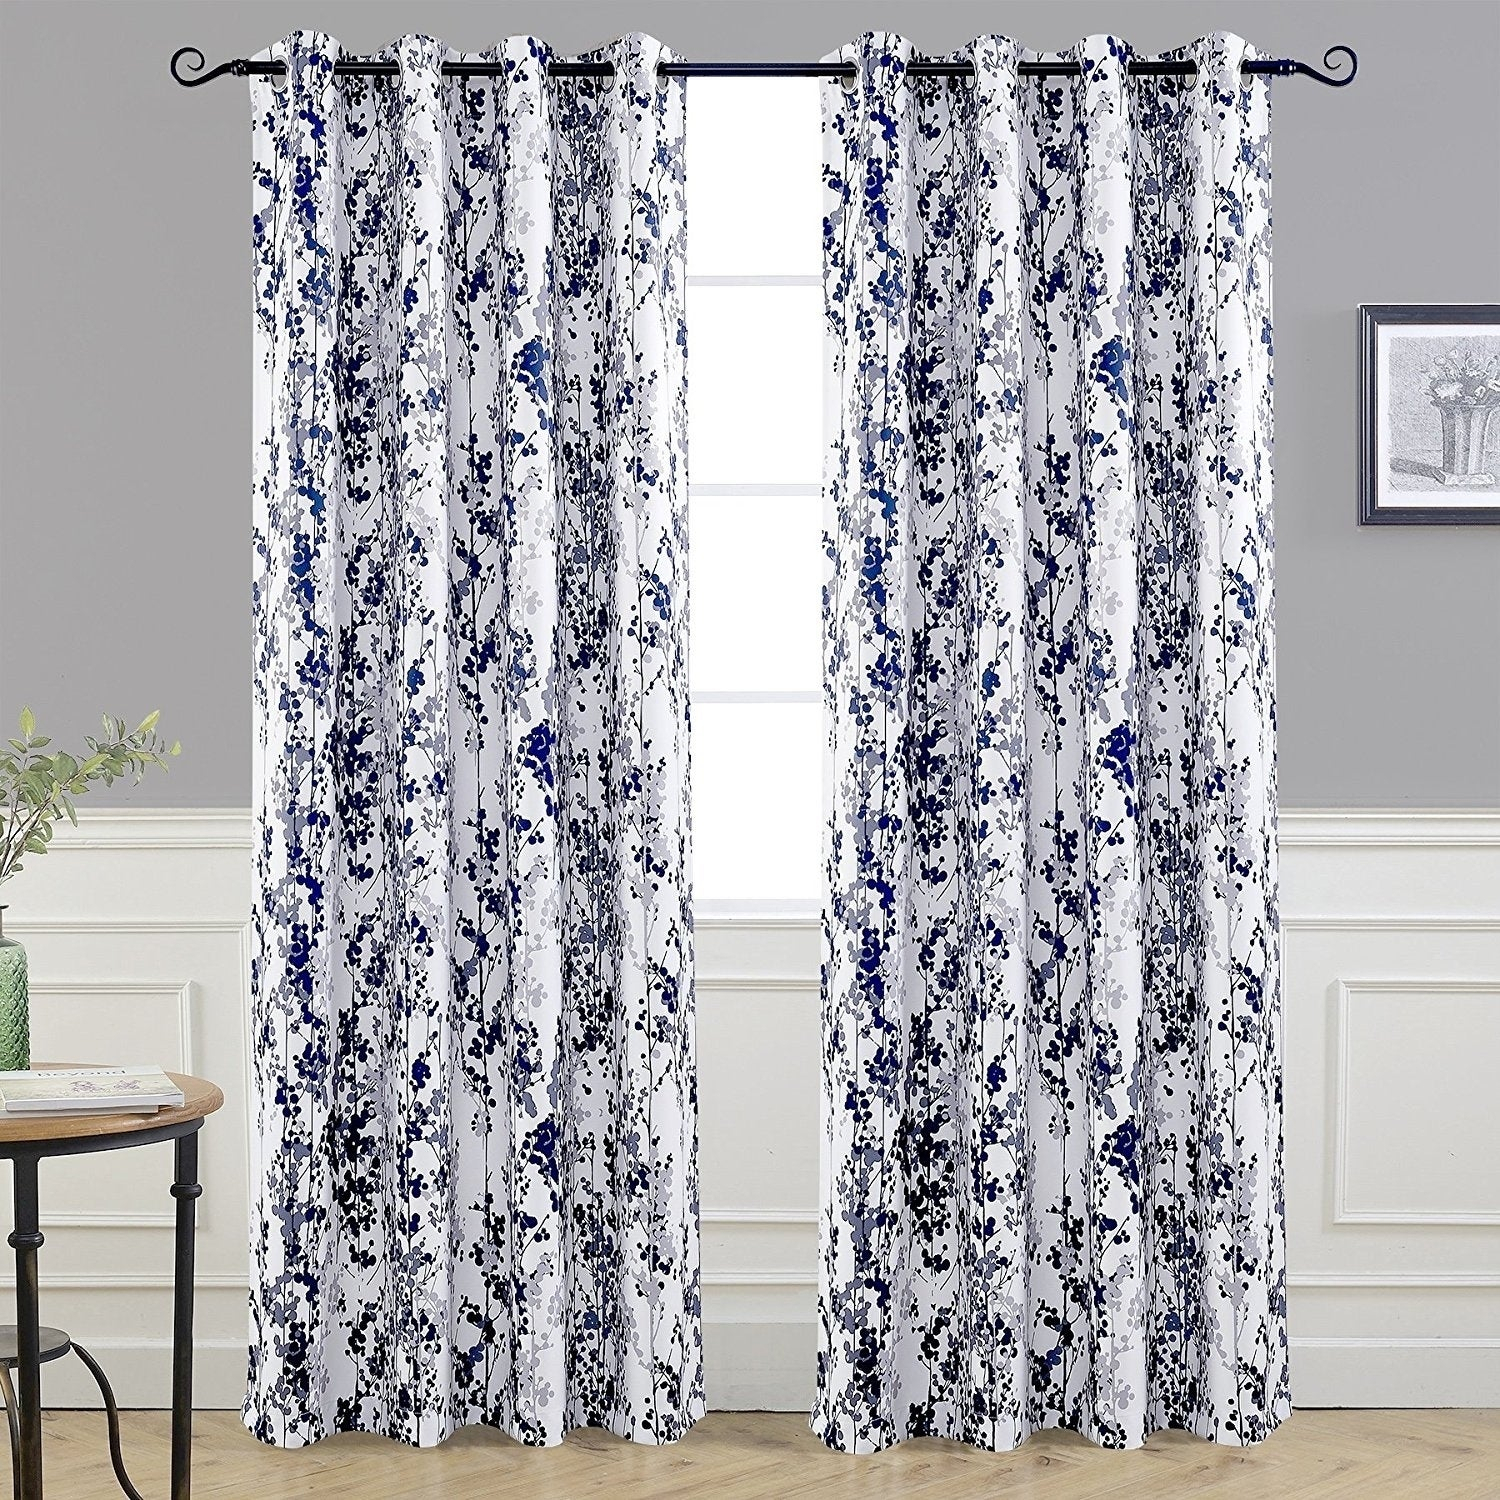 Driftaway Leah Floral Blossom Ink Painting Room Darkening Grommet Window  Curtain Panel Pair throughout Floral Pattern Room Darkening Window Curtain Panel Pairs (Image 7 of 20)